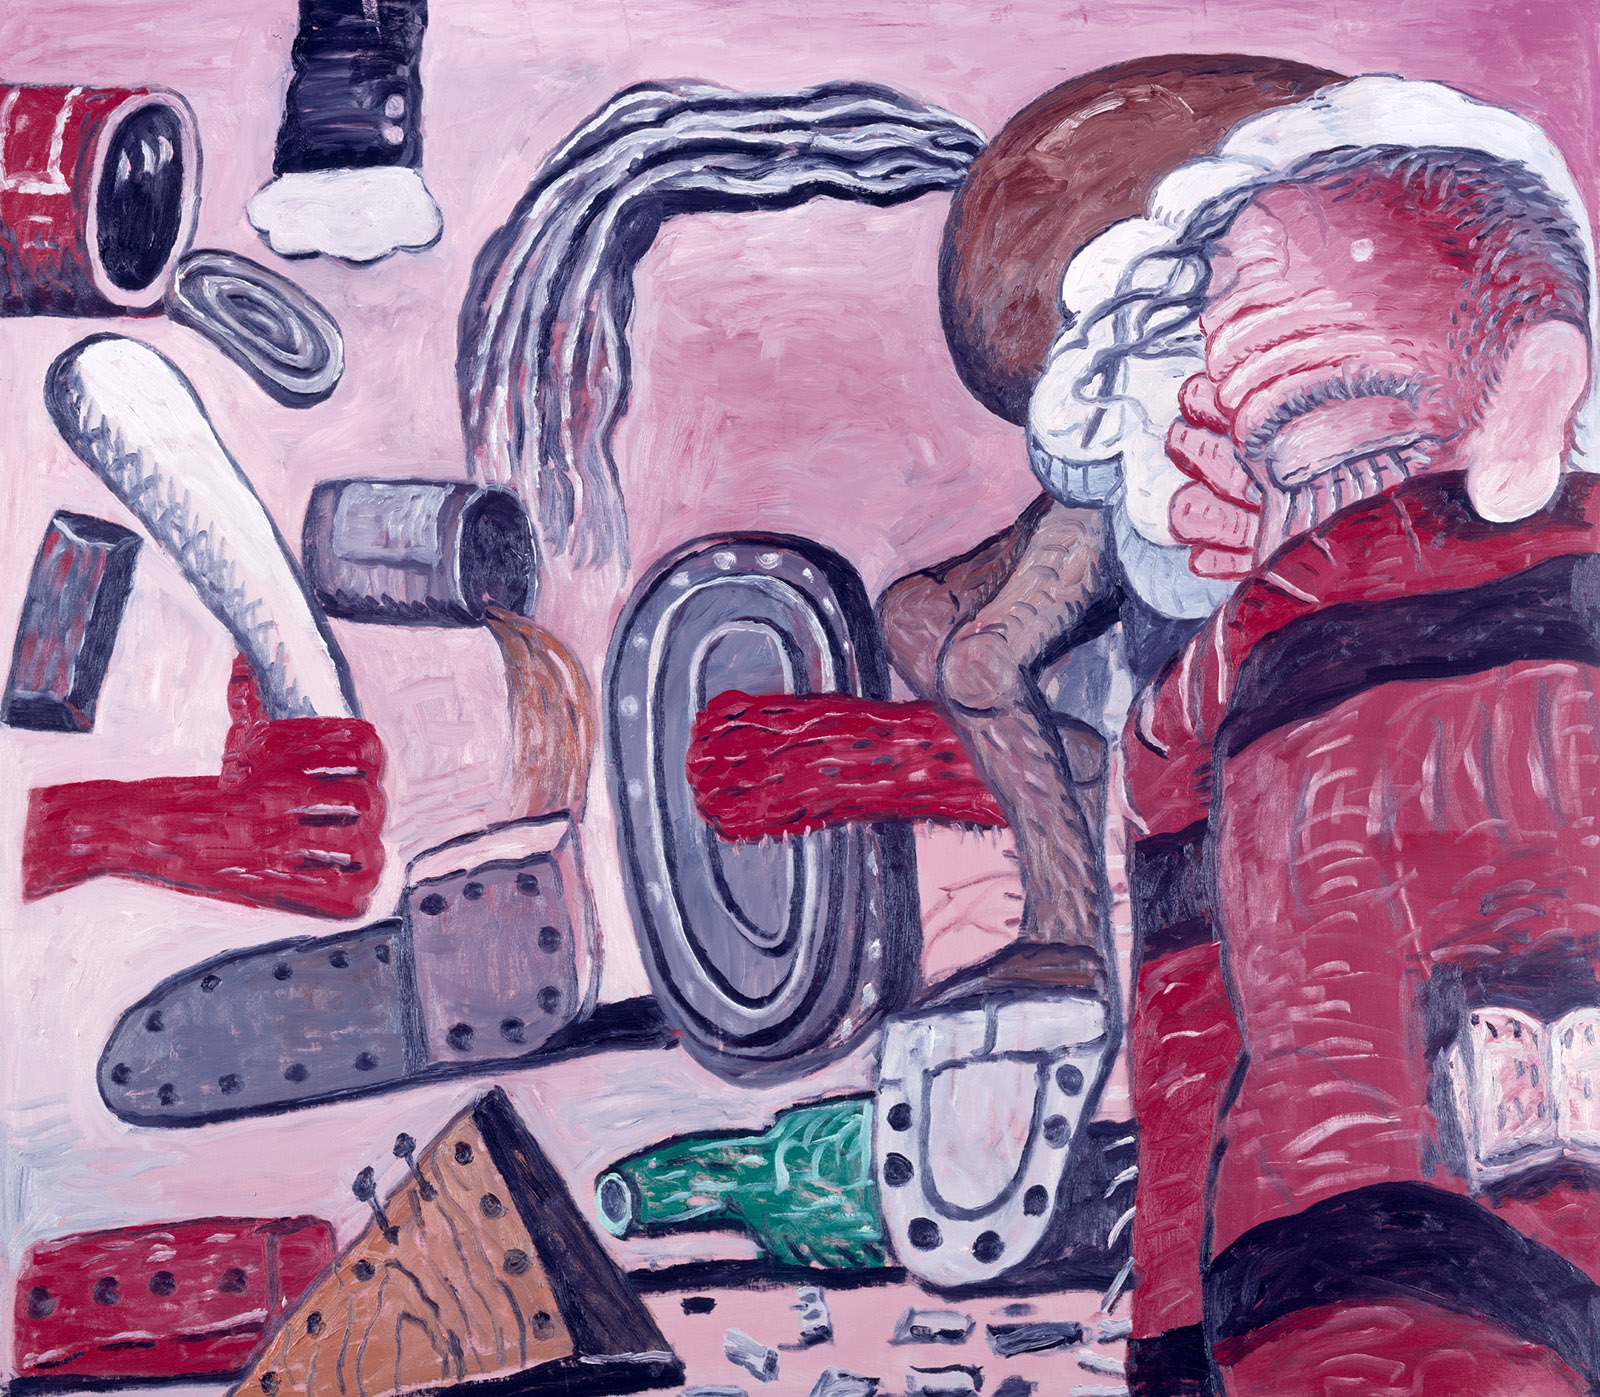 A painting by Philip Guston